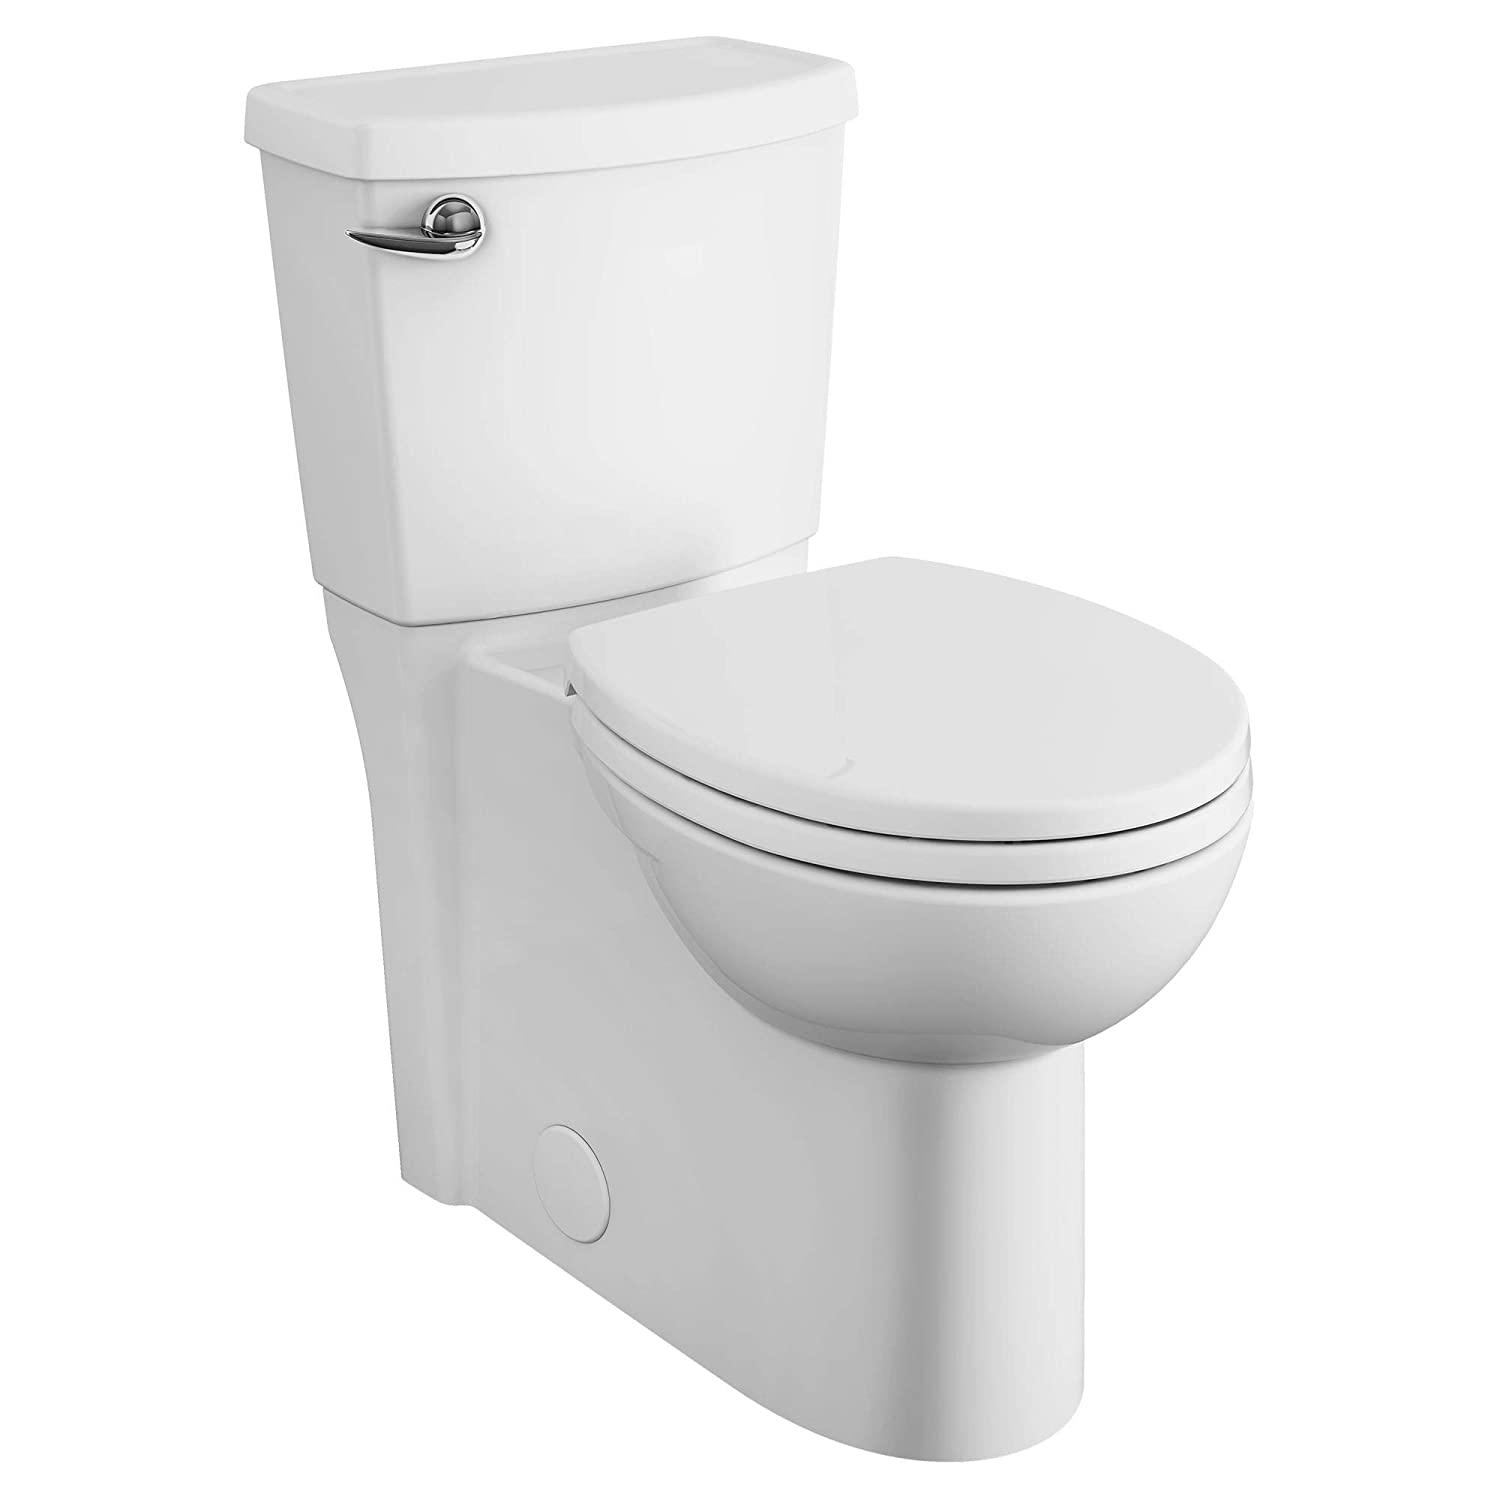 Top 5 Best Skirted Toilets Reviews in 2020 4